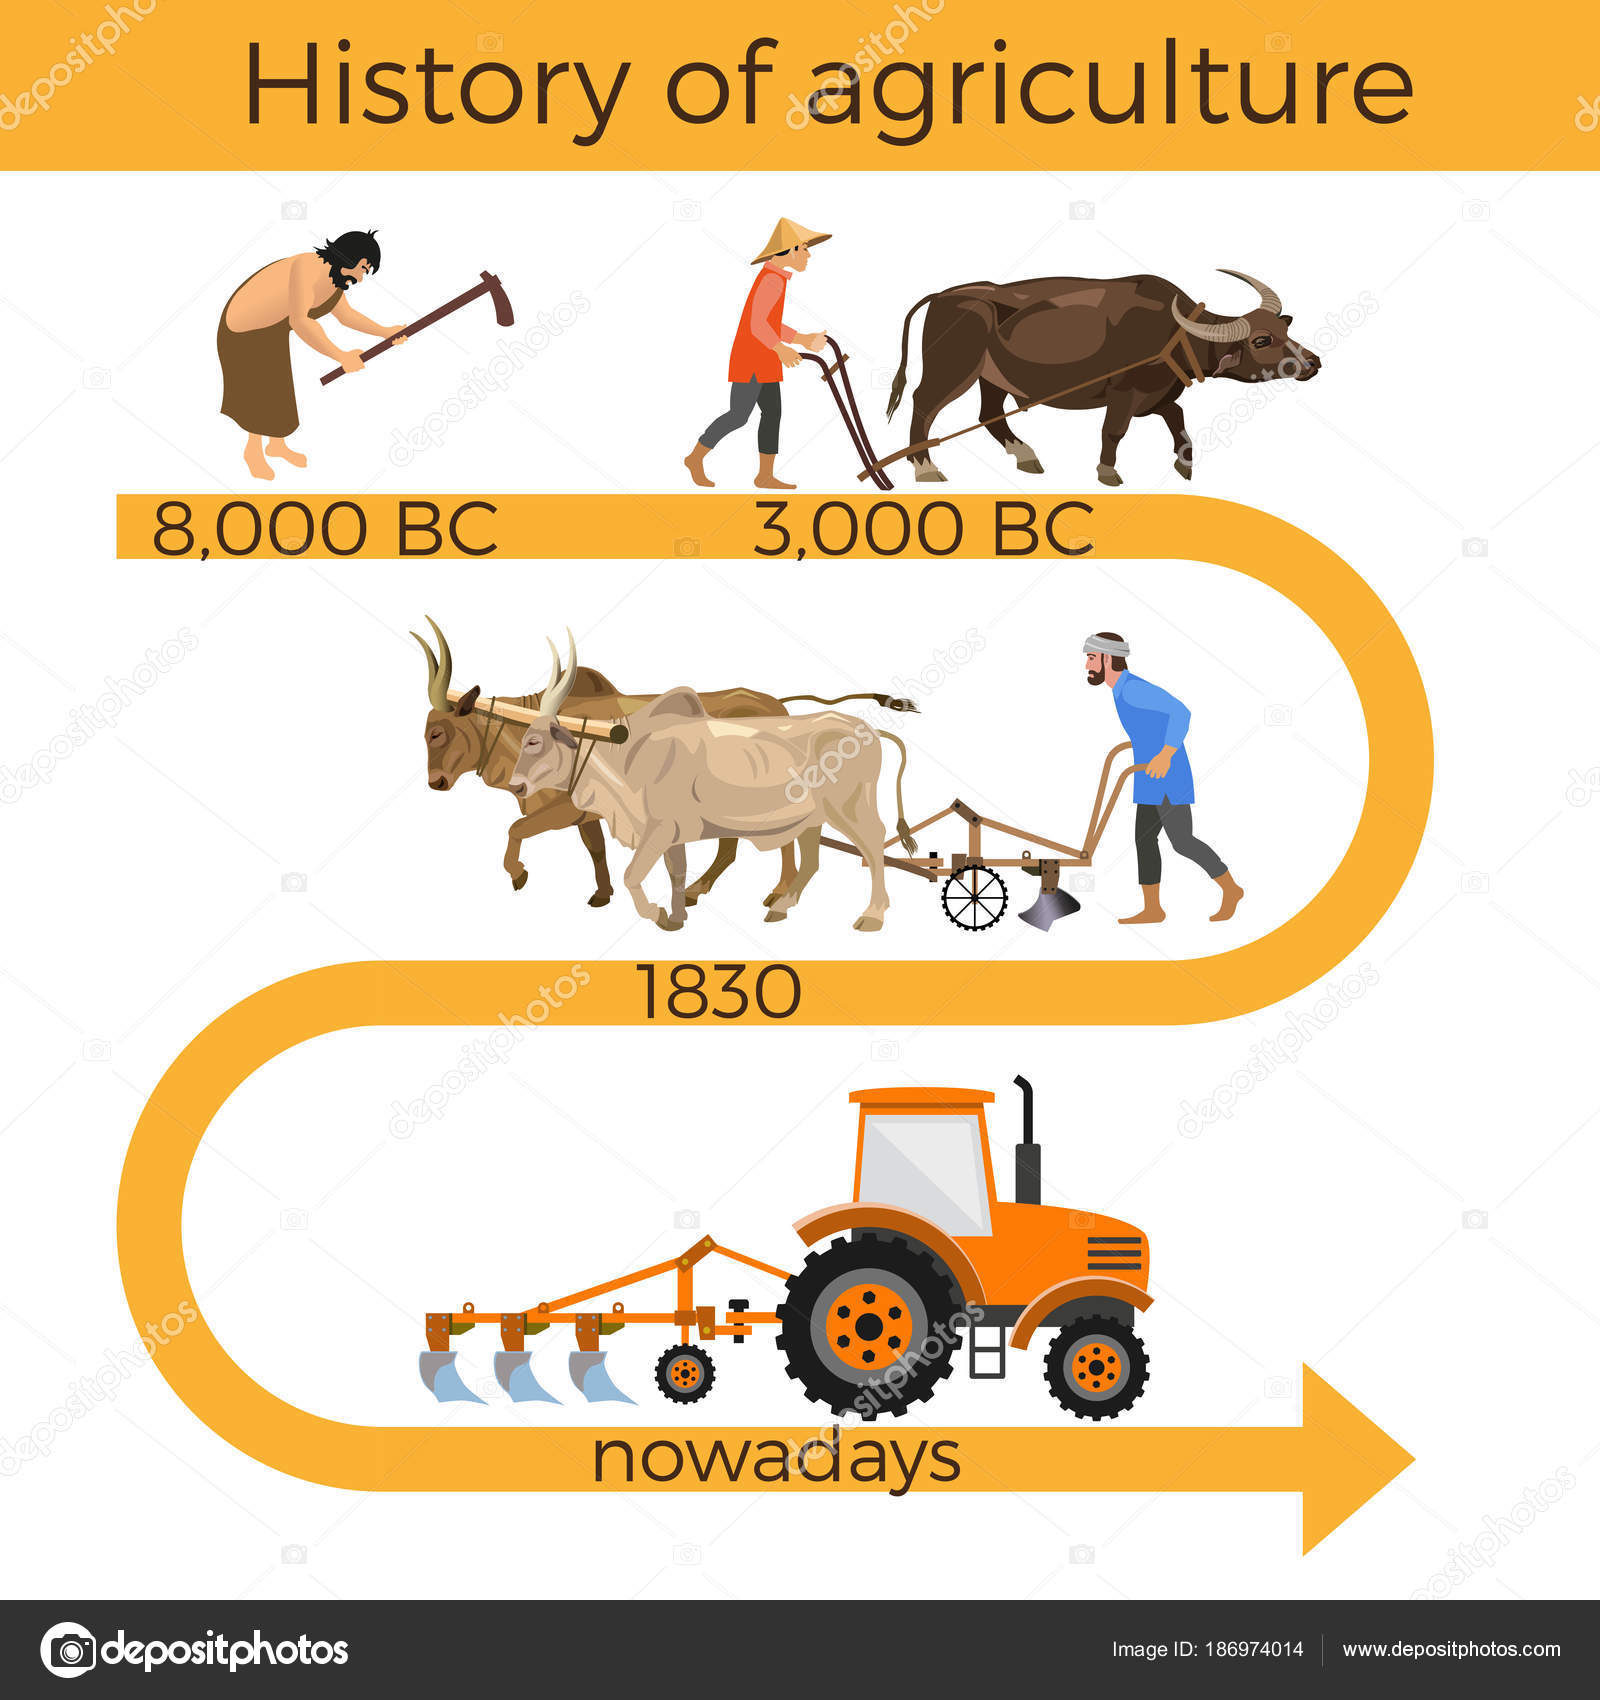 what is history of agriculture